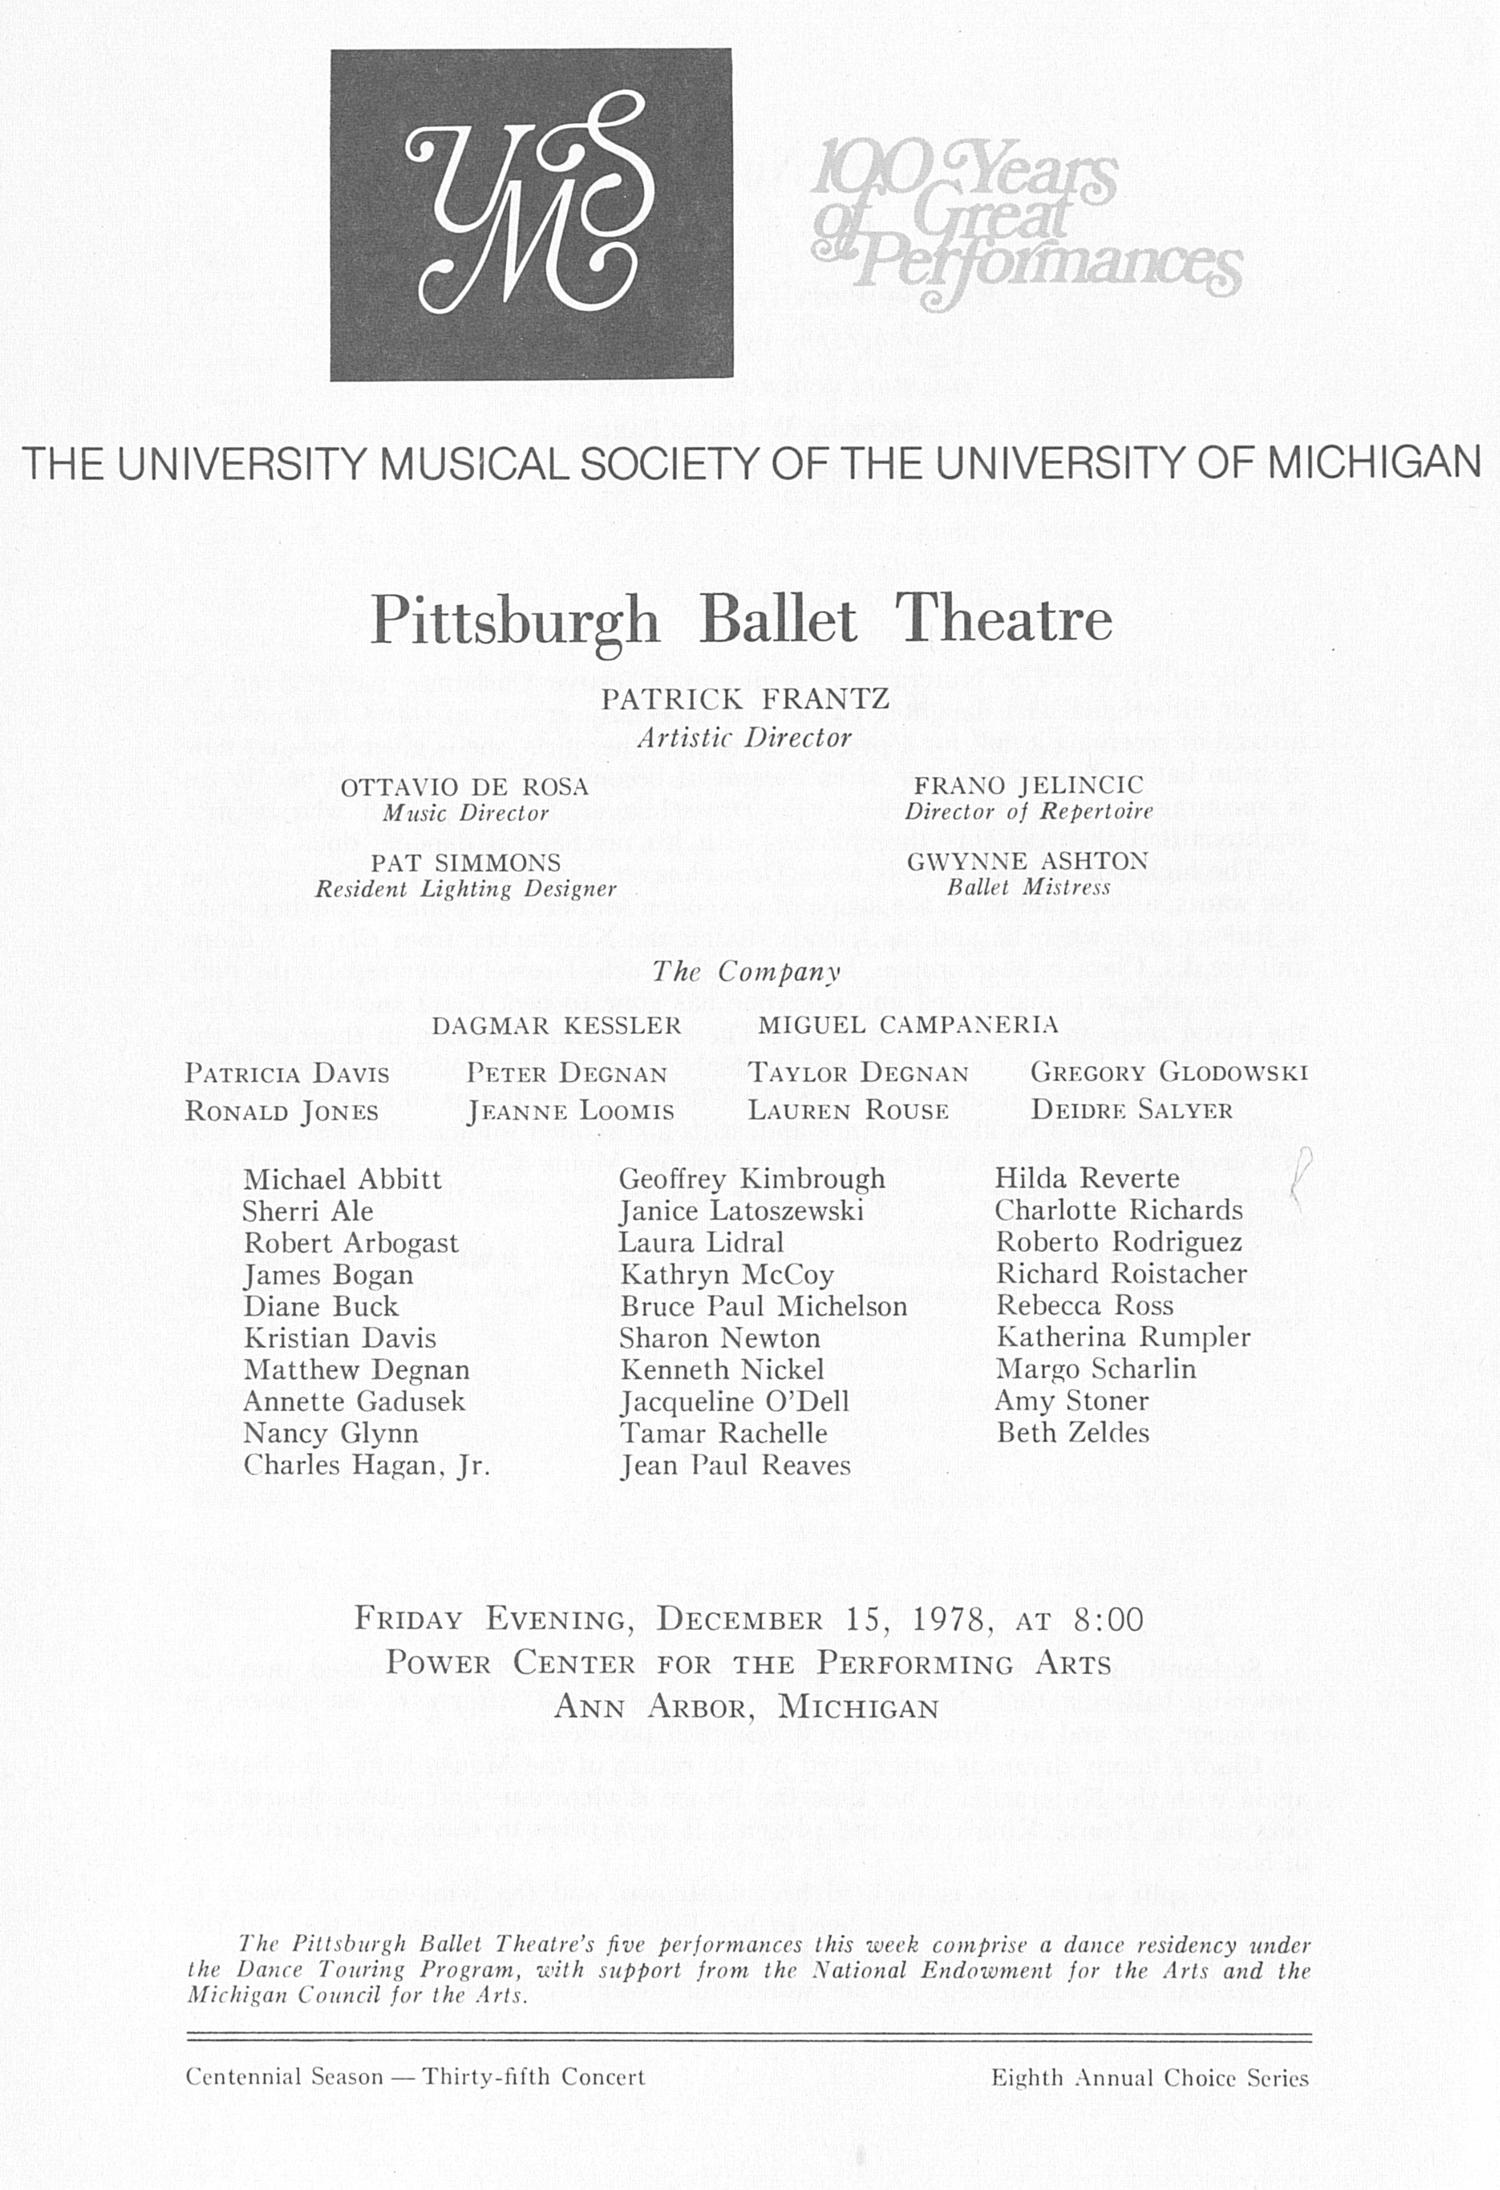 UMS Concert Program, December 15, 1978: Pittsburgh Ballet Theatre -- Patrick Frantz image